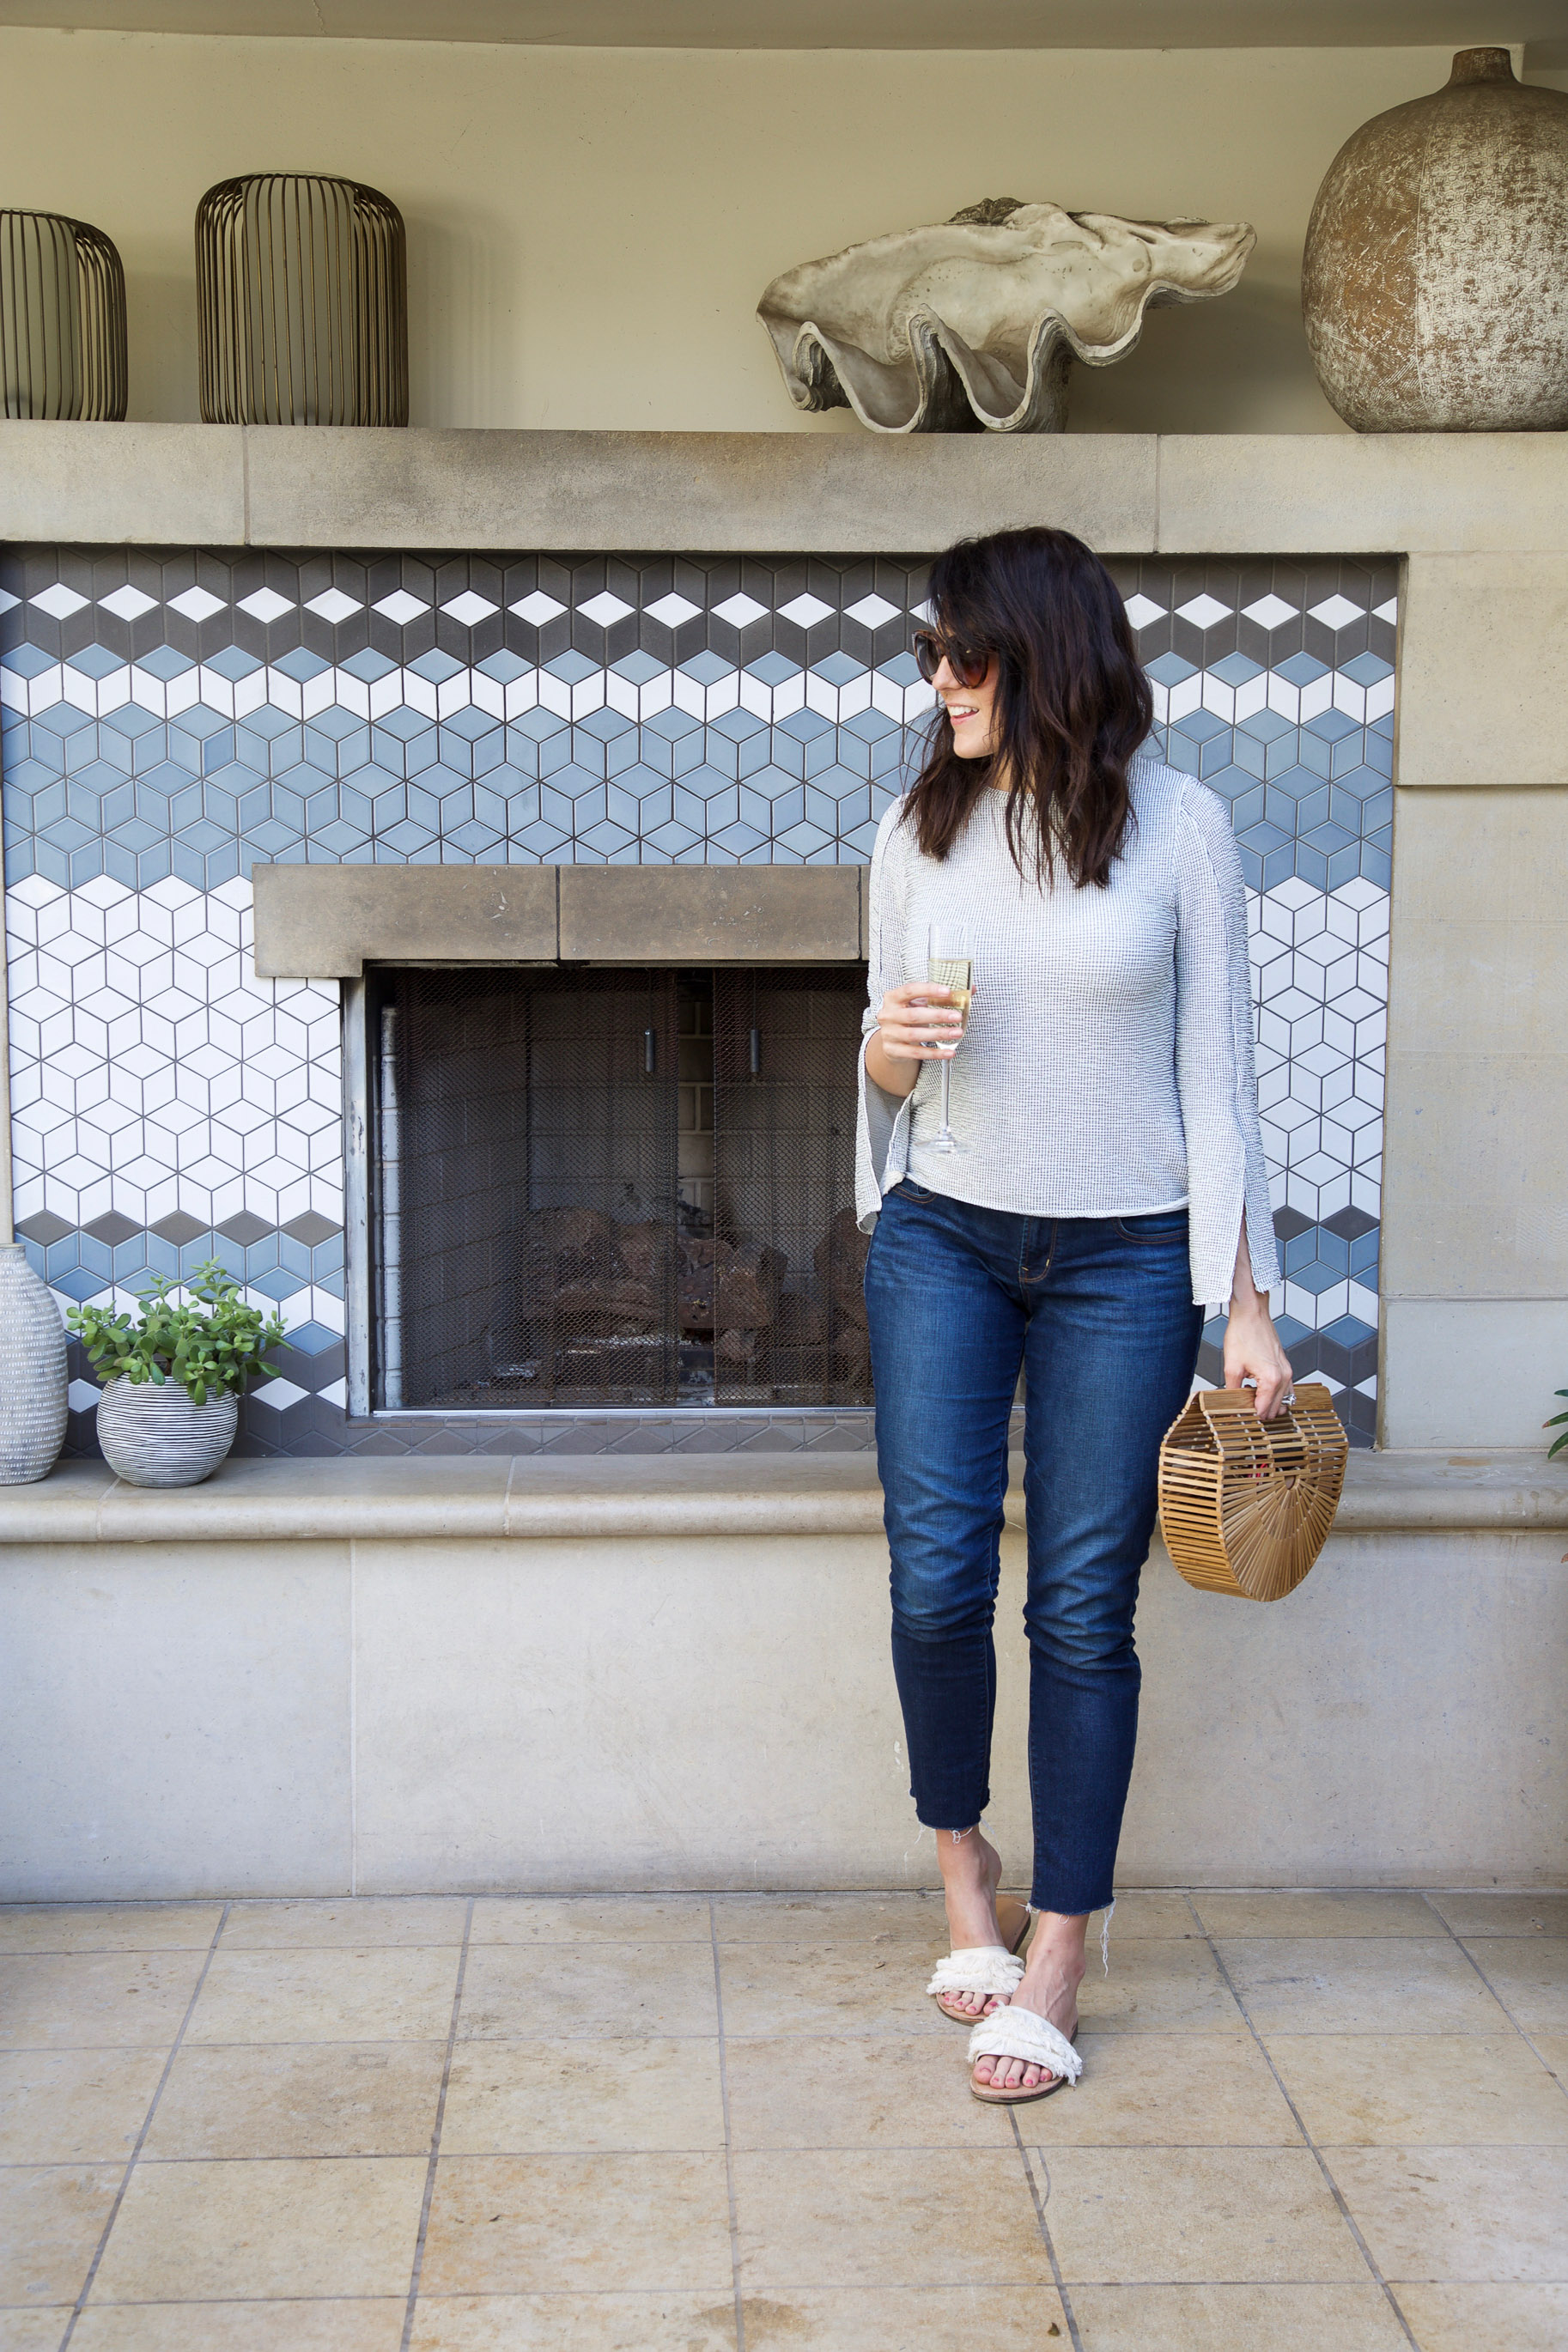 bell-sleeve-top-and-fringe-jeans-9-of-9.jpg